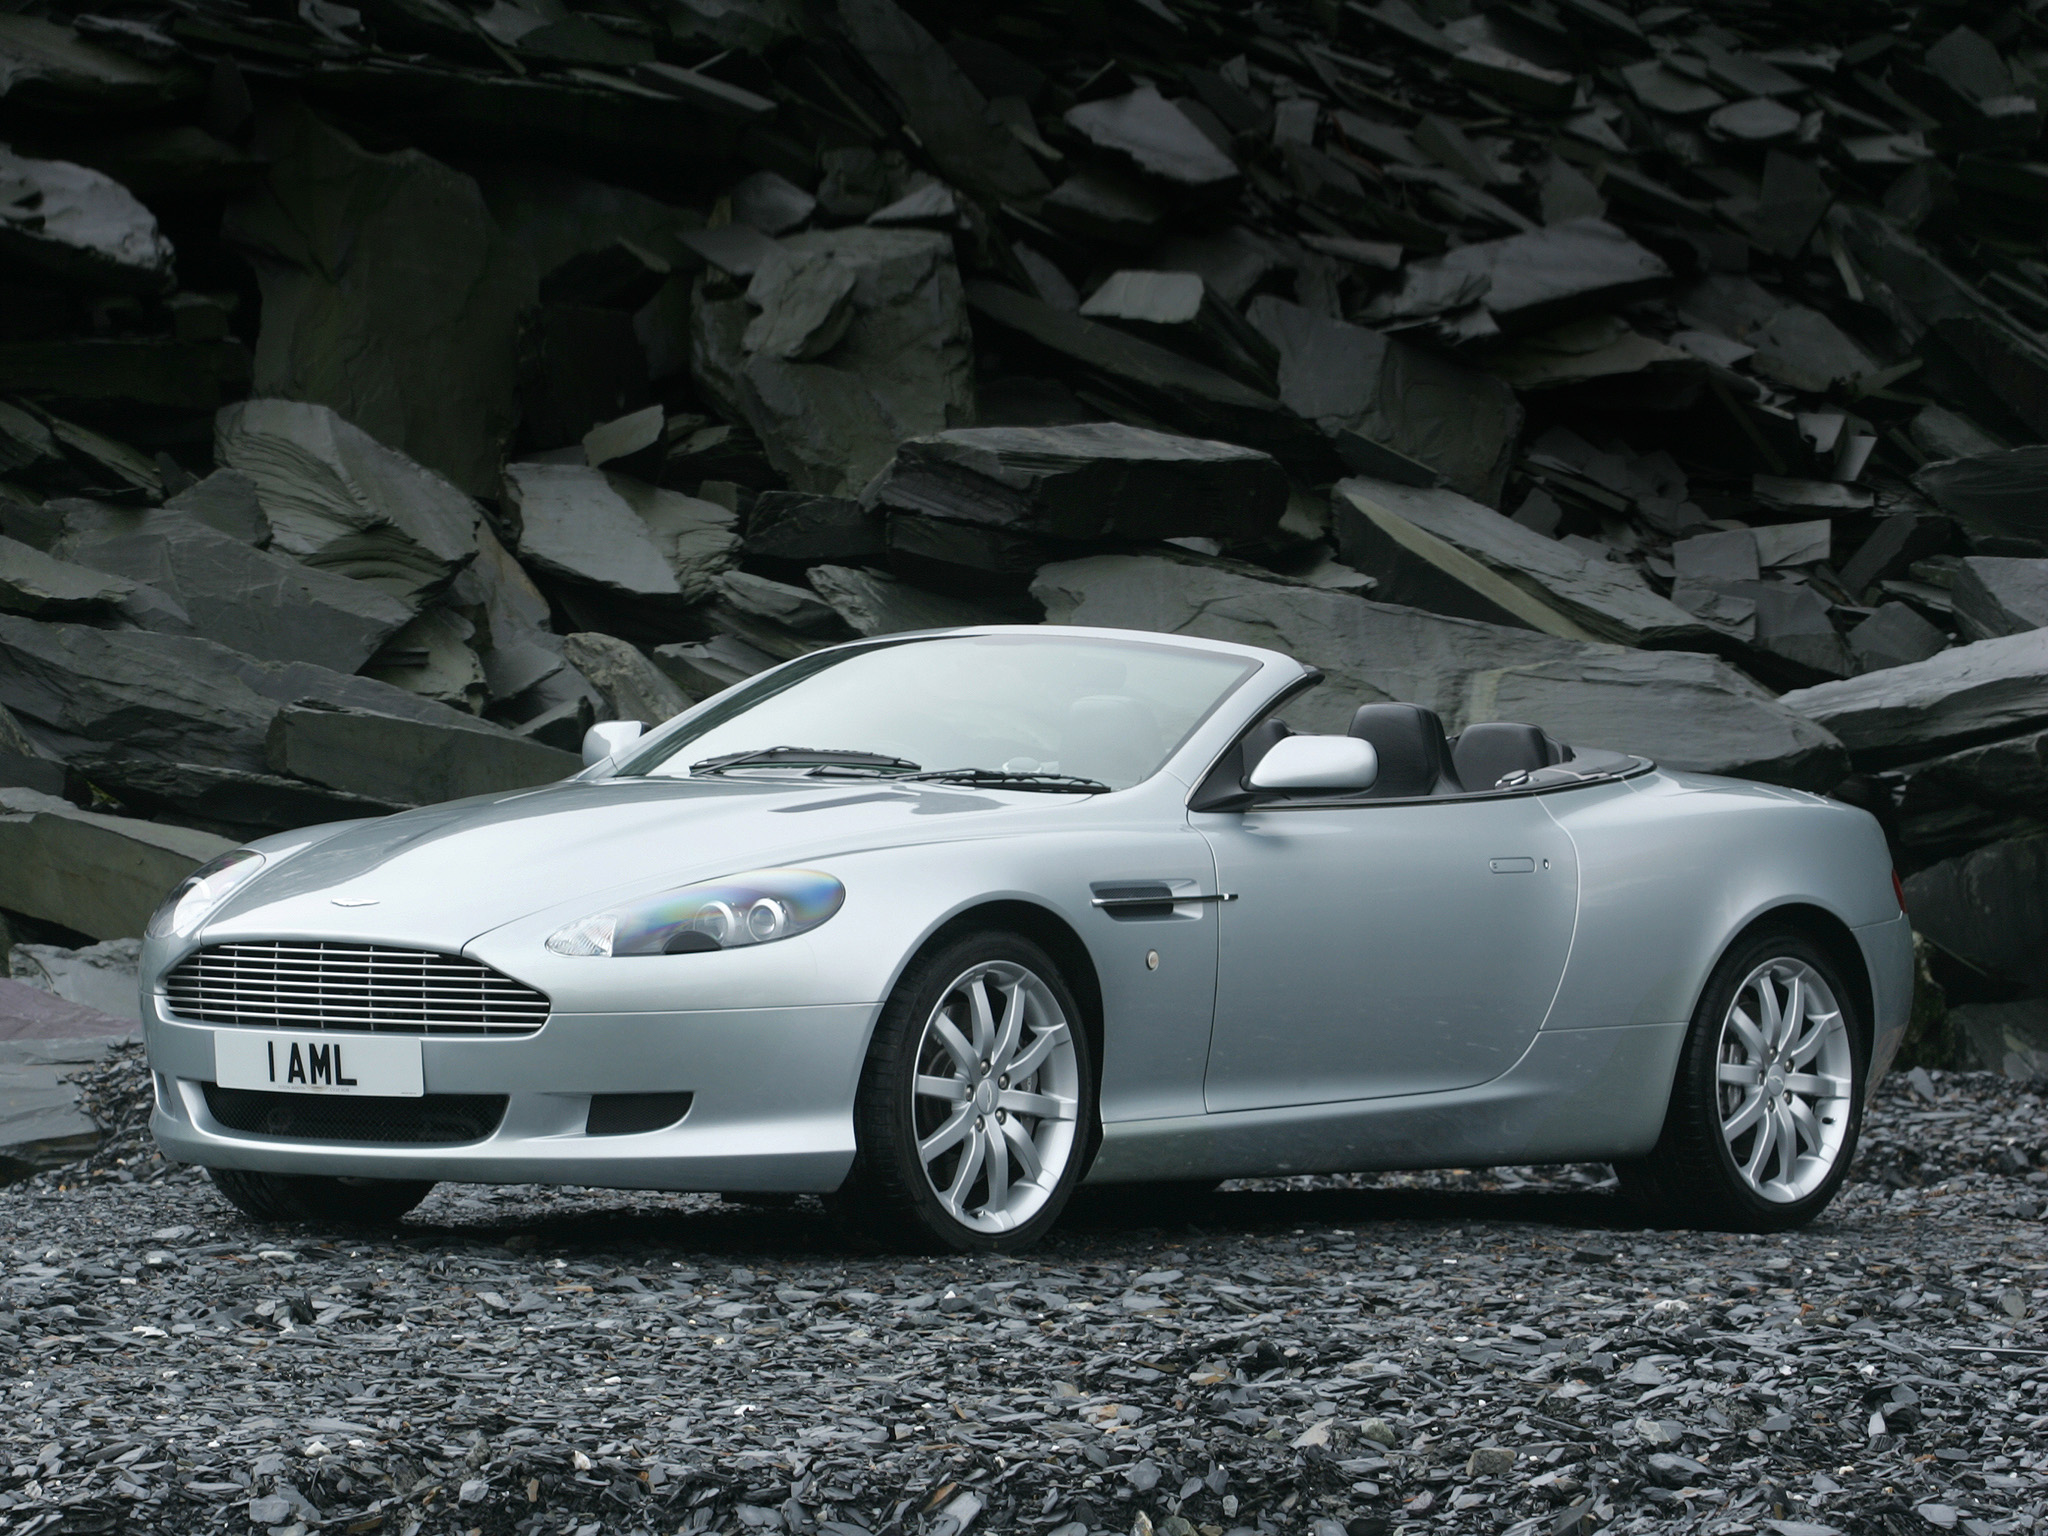 2004 Aston Martin DB9 Volante photo - 1